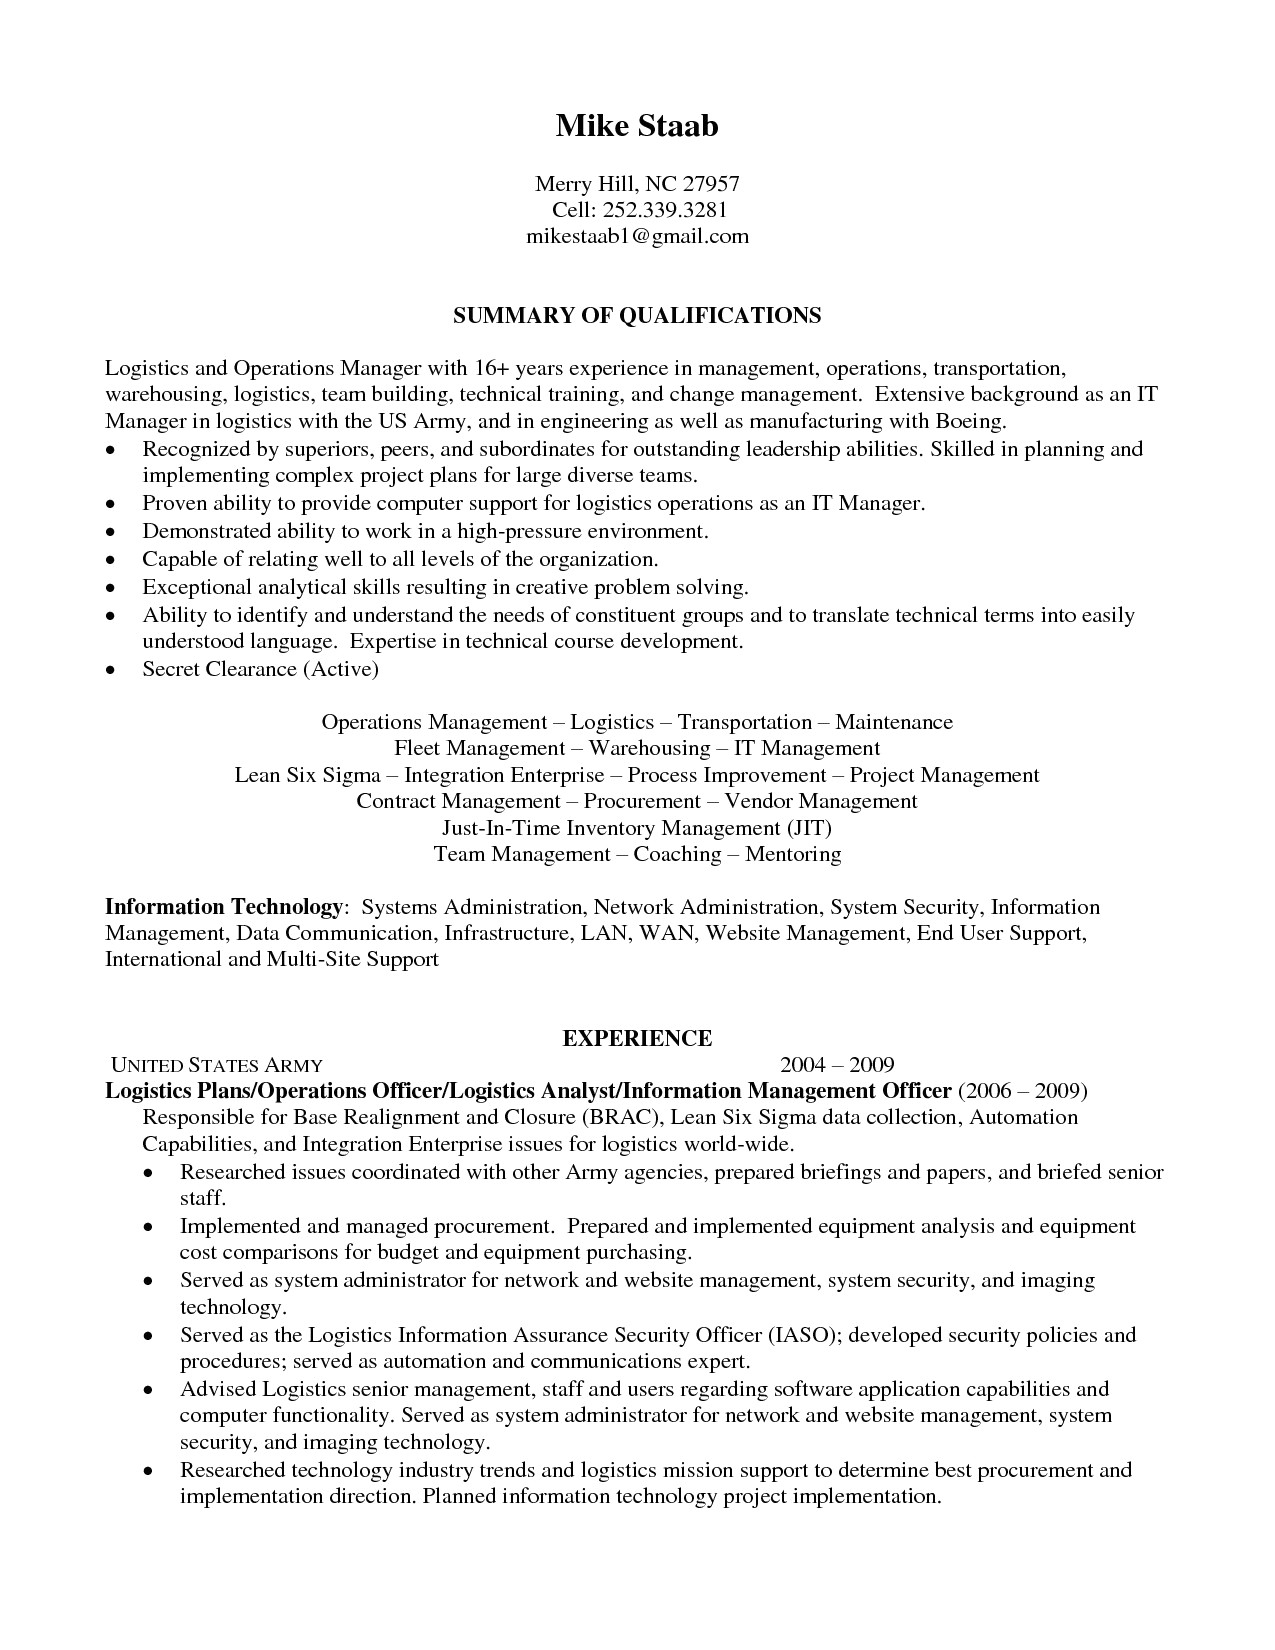 system administrator resume template Collection-Related Post system administrator resume regarding Fresh Grapher Resume Sample Beautiful Resume Quotes 0d 2-p